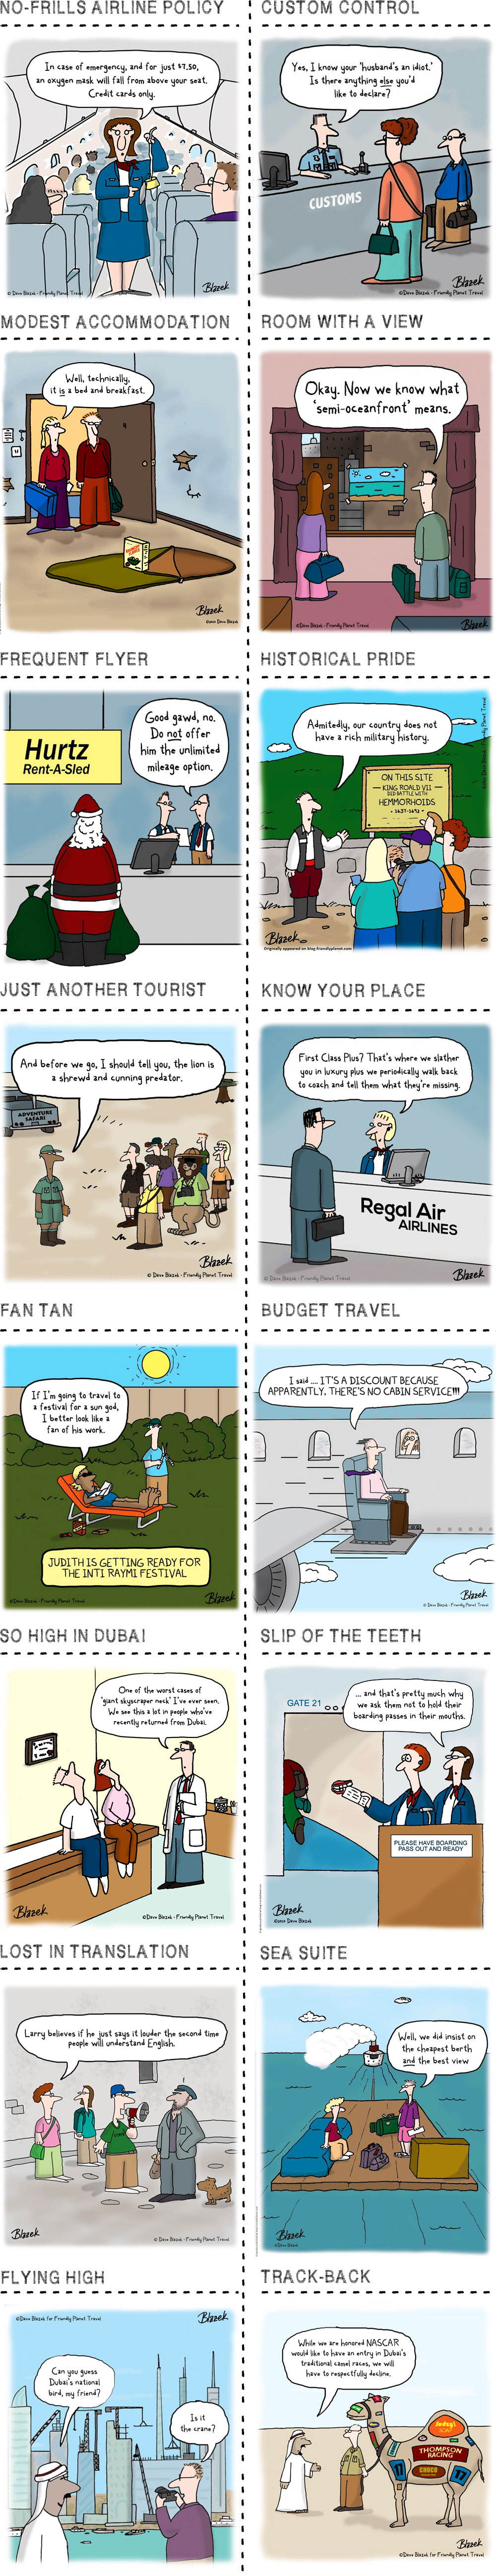 Travel-Humor-By-Dave-Blazek